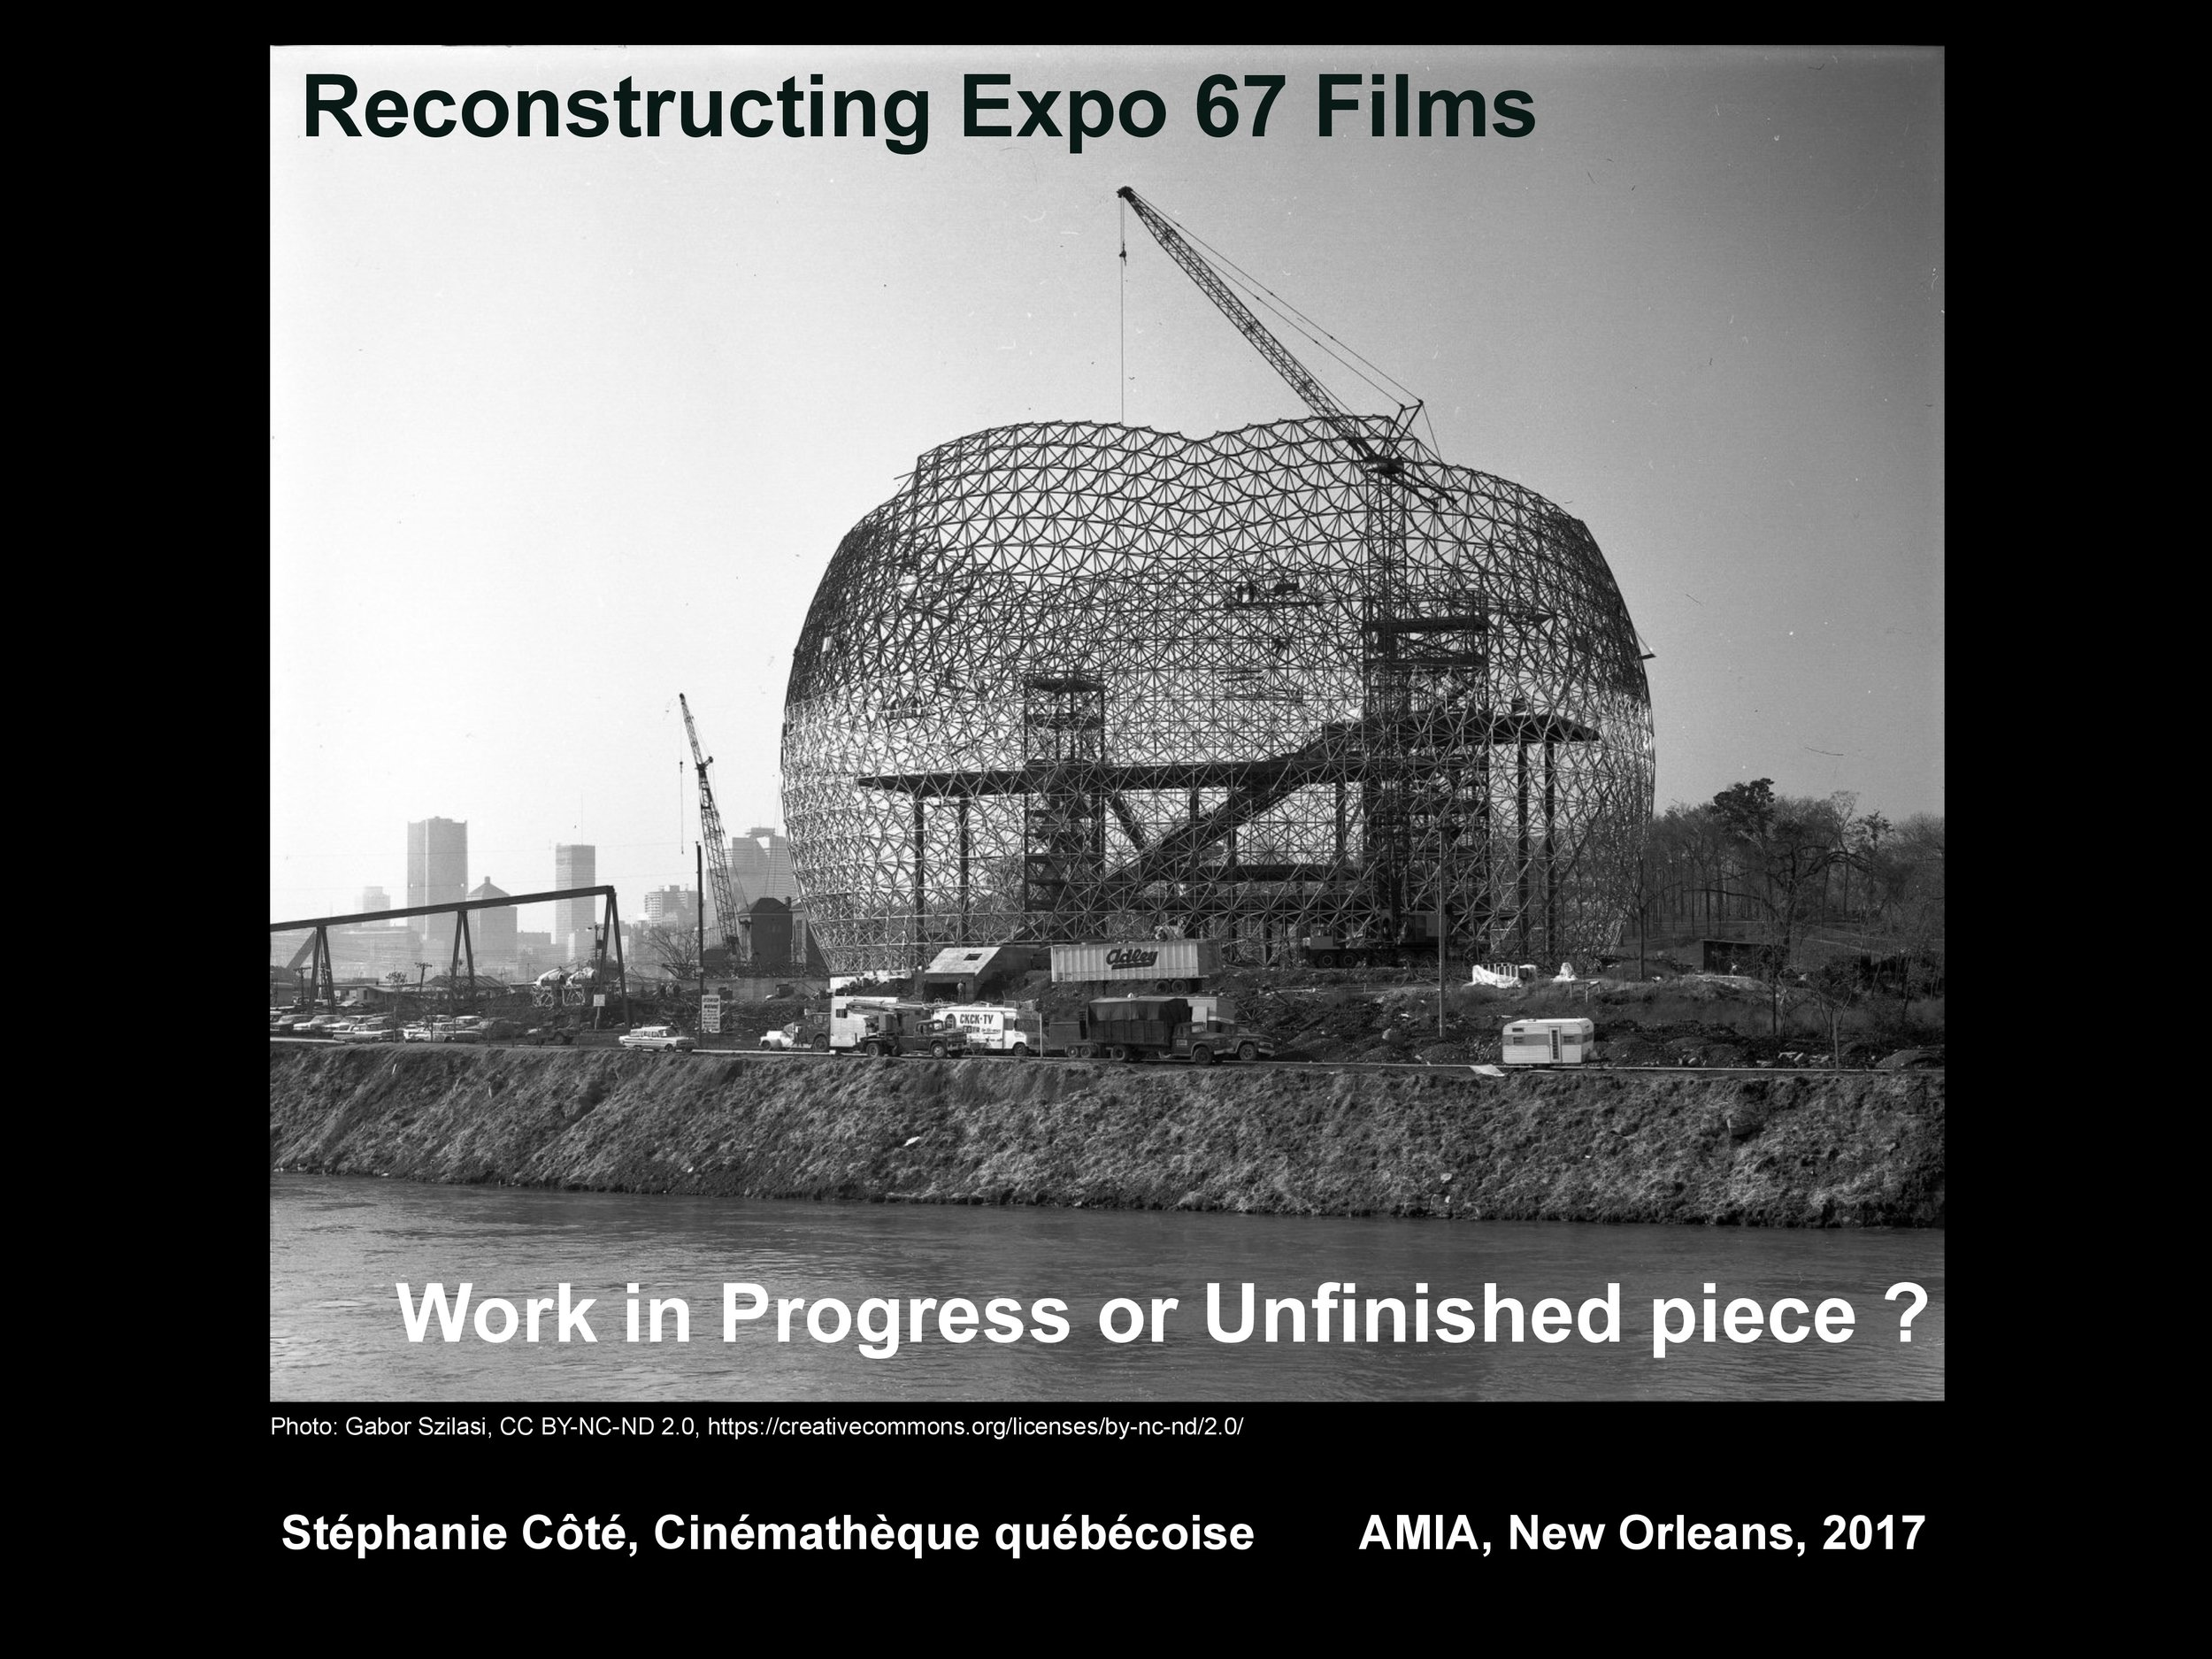 Lecture:   Stéphanie Côté:Reconstructing Expo 67 Films     レクチャー: ステファニー・コテー「Expo67のフィルムの再現」